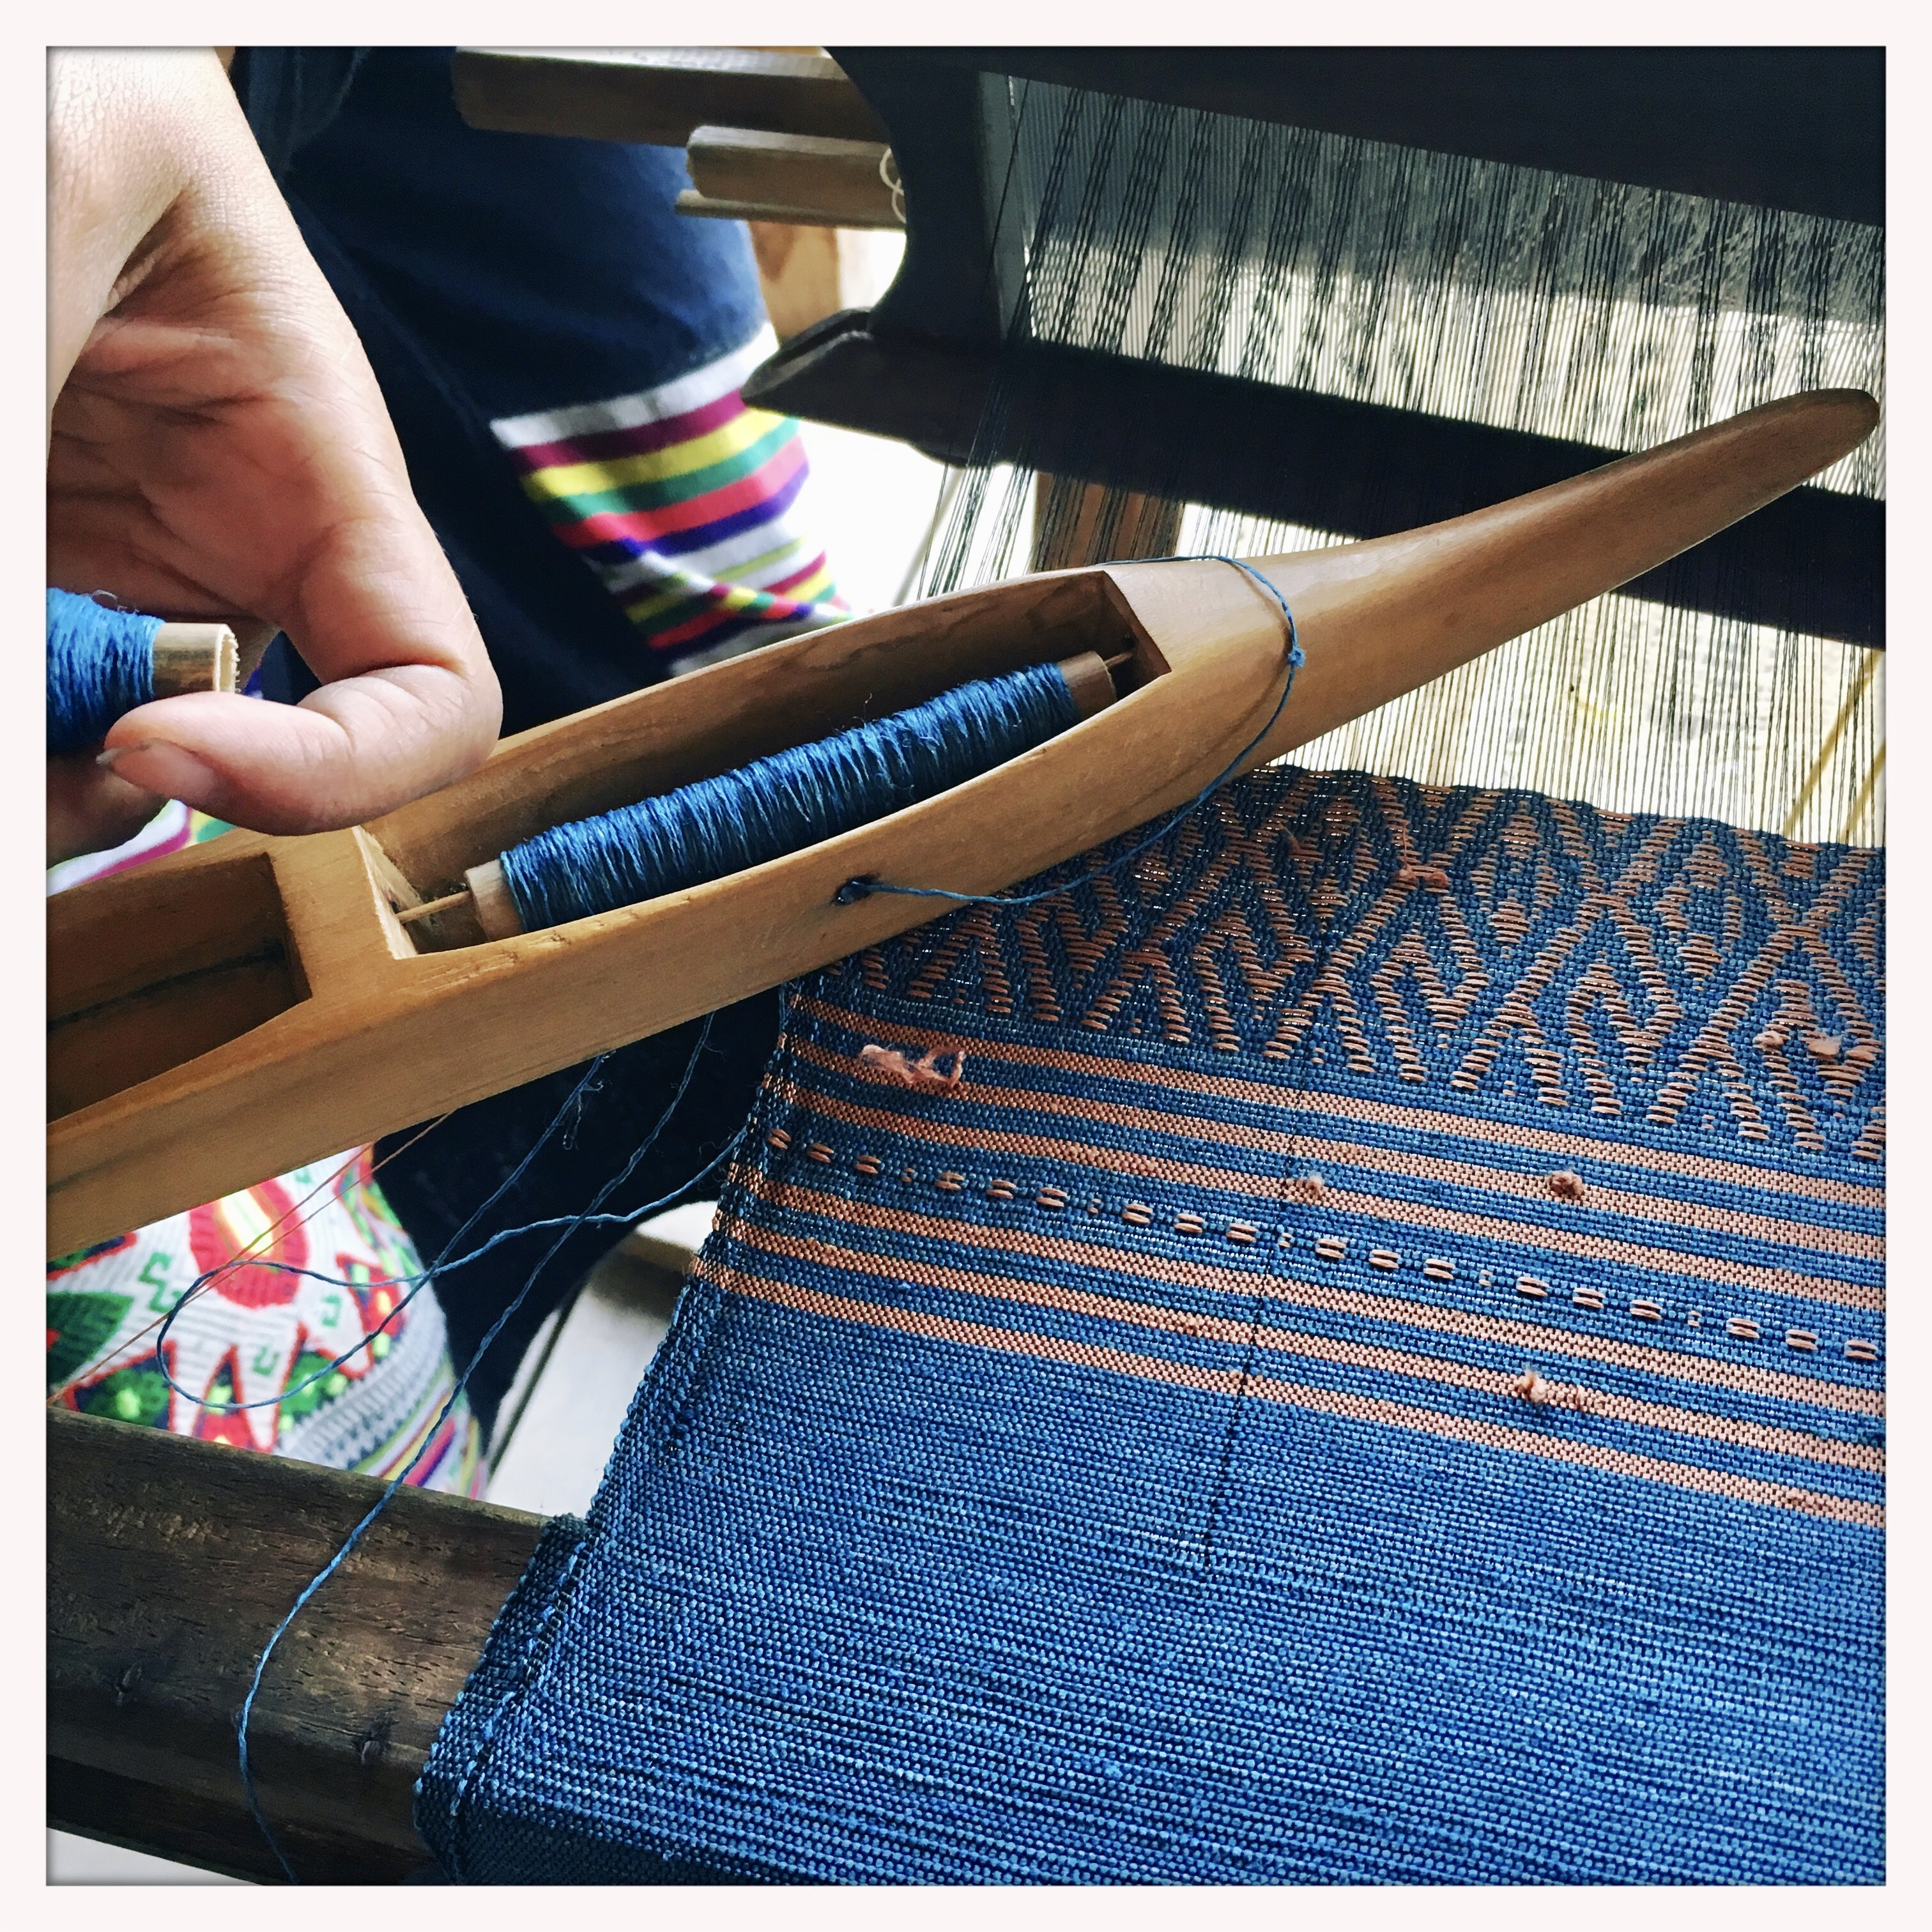 An afternoon of weaving